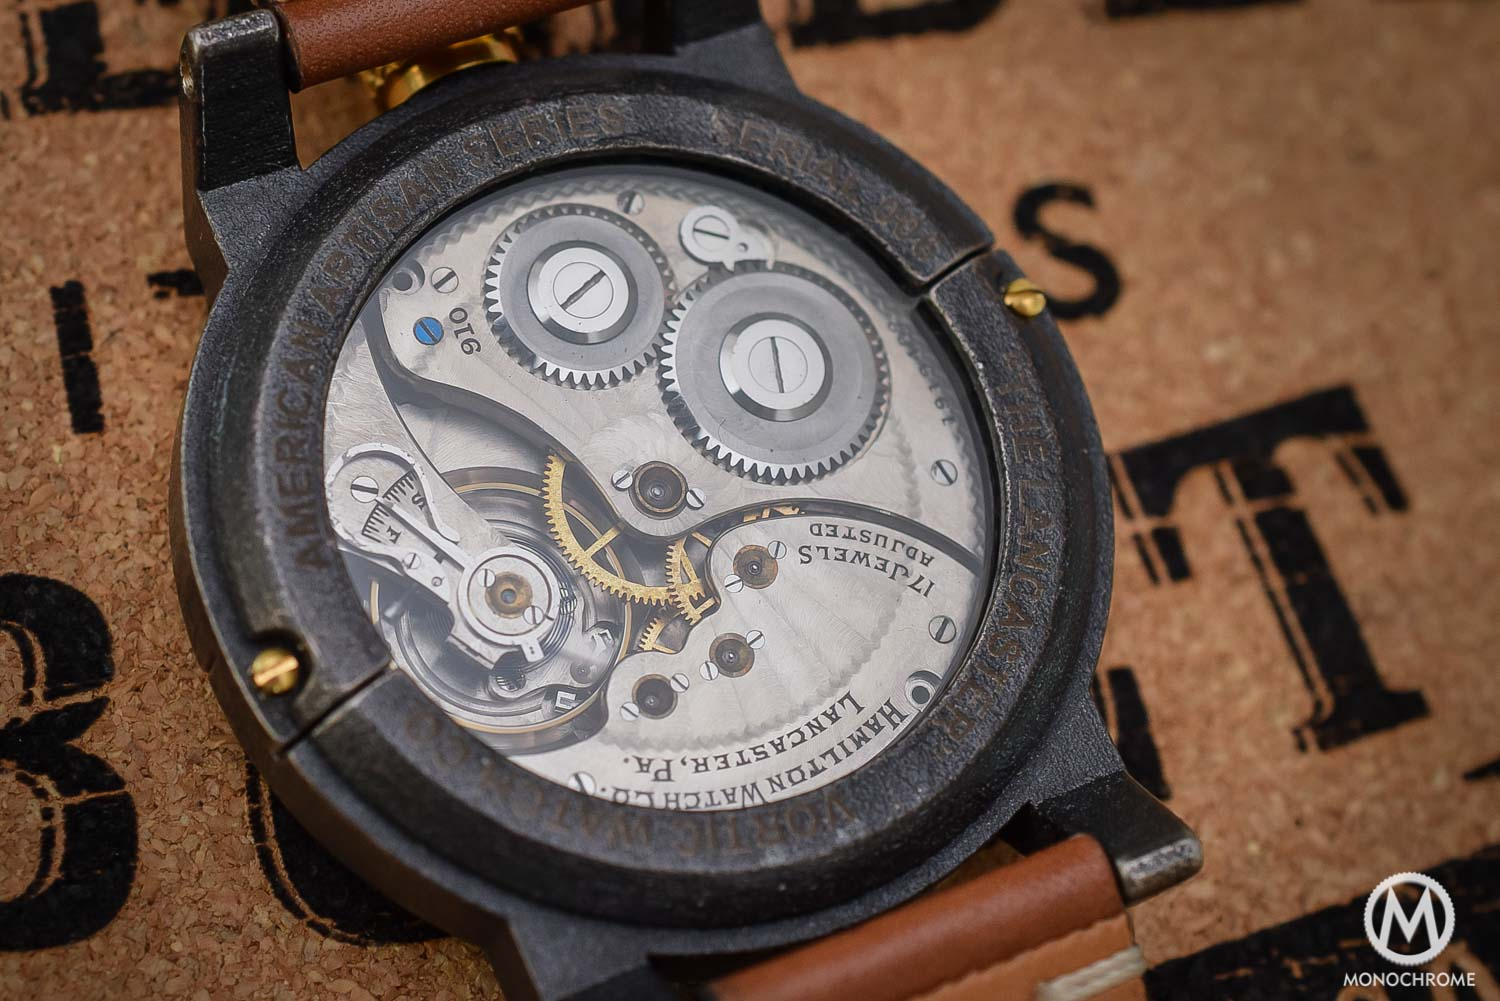 Vortic Watch Co - antique movements and 3D printed cases - 7